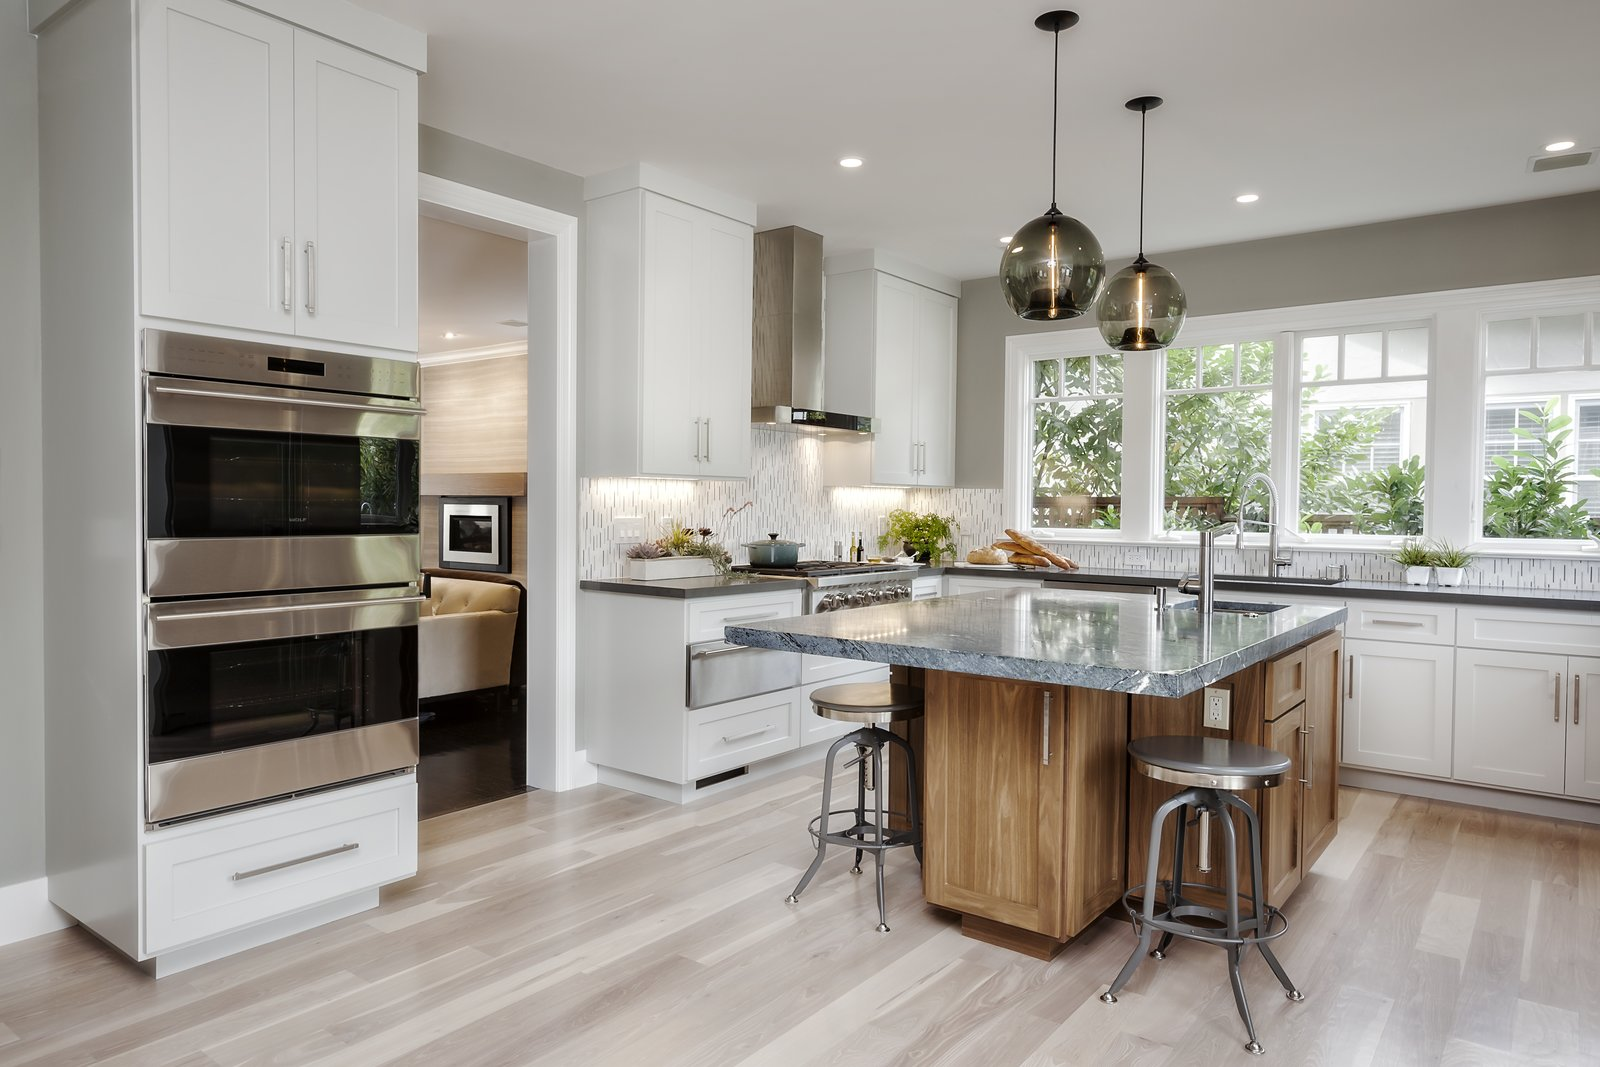 Contemporary Kitchen Island Pendants Spotted in California ... on Images Of Modern Kitchens  id=83846